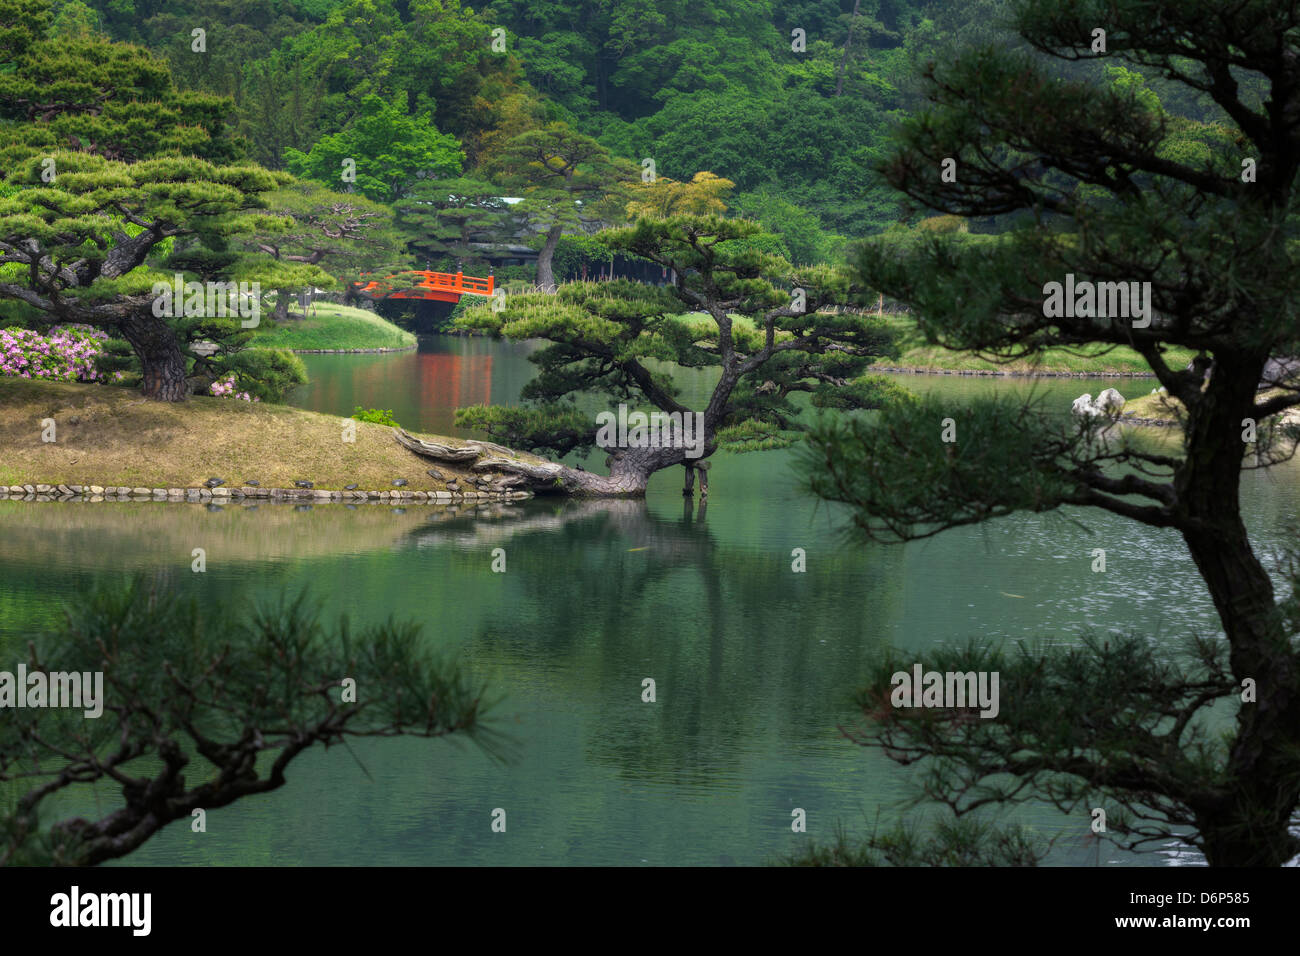 Japanese garden with a pond red bridge ornamental pine trees and